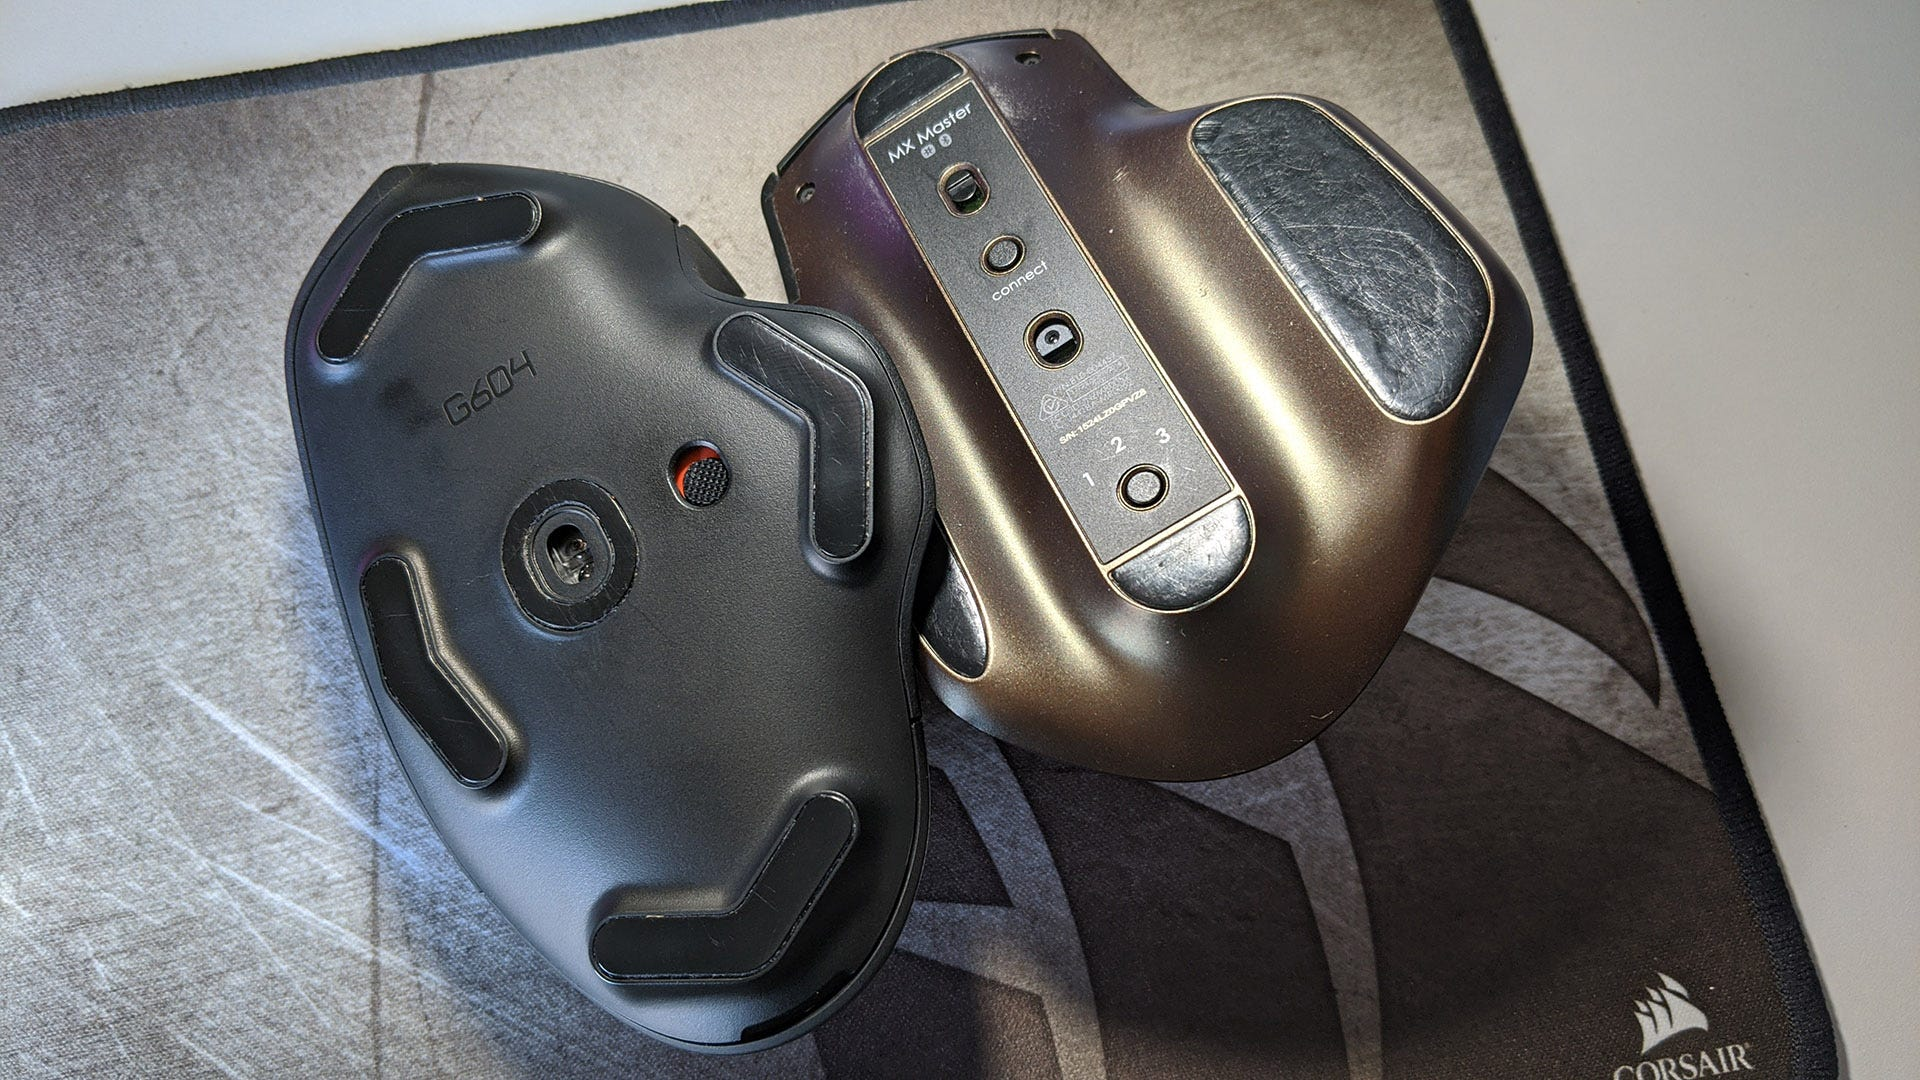 Two computer mice, upside down, with one worn and one clean.